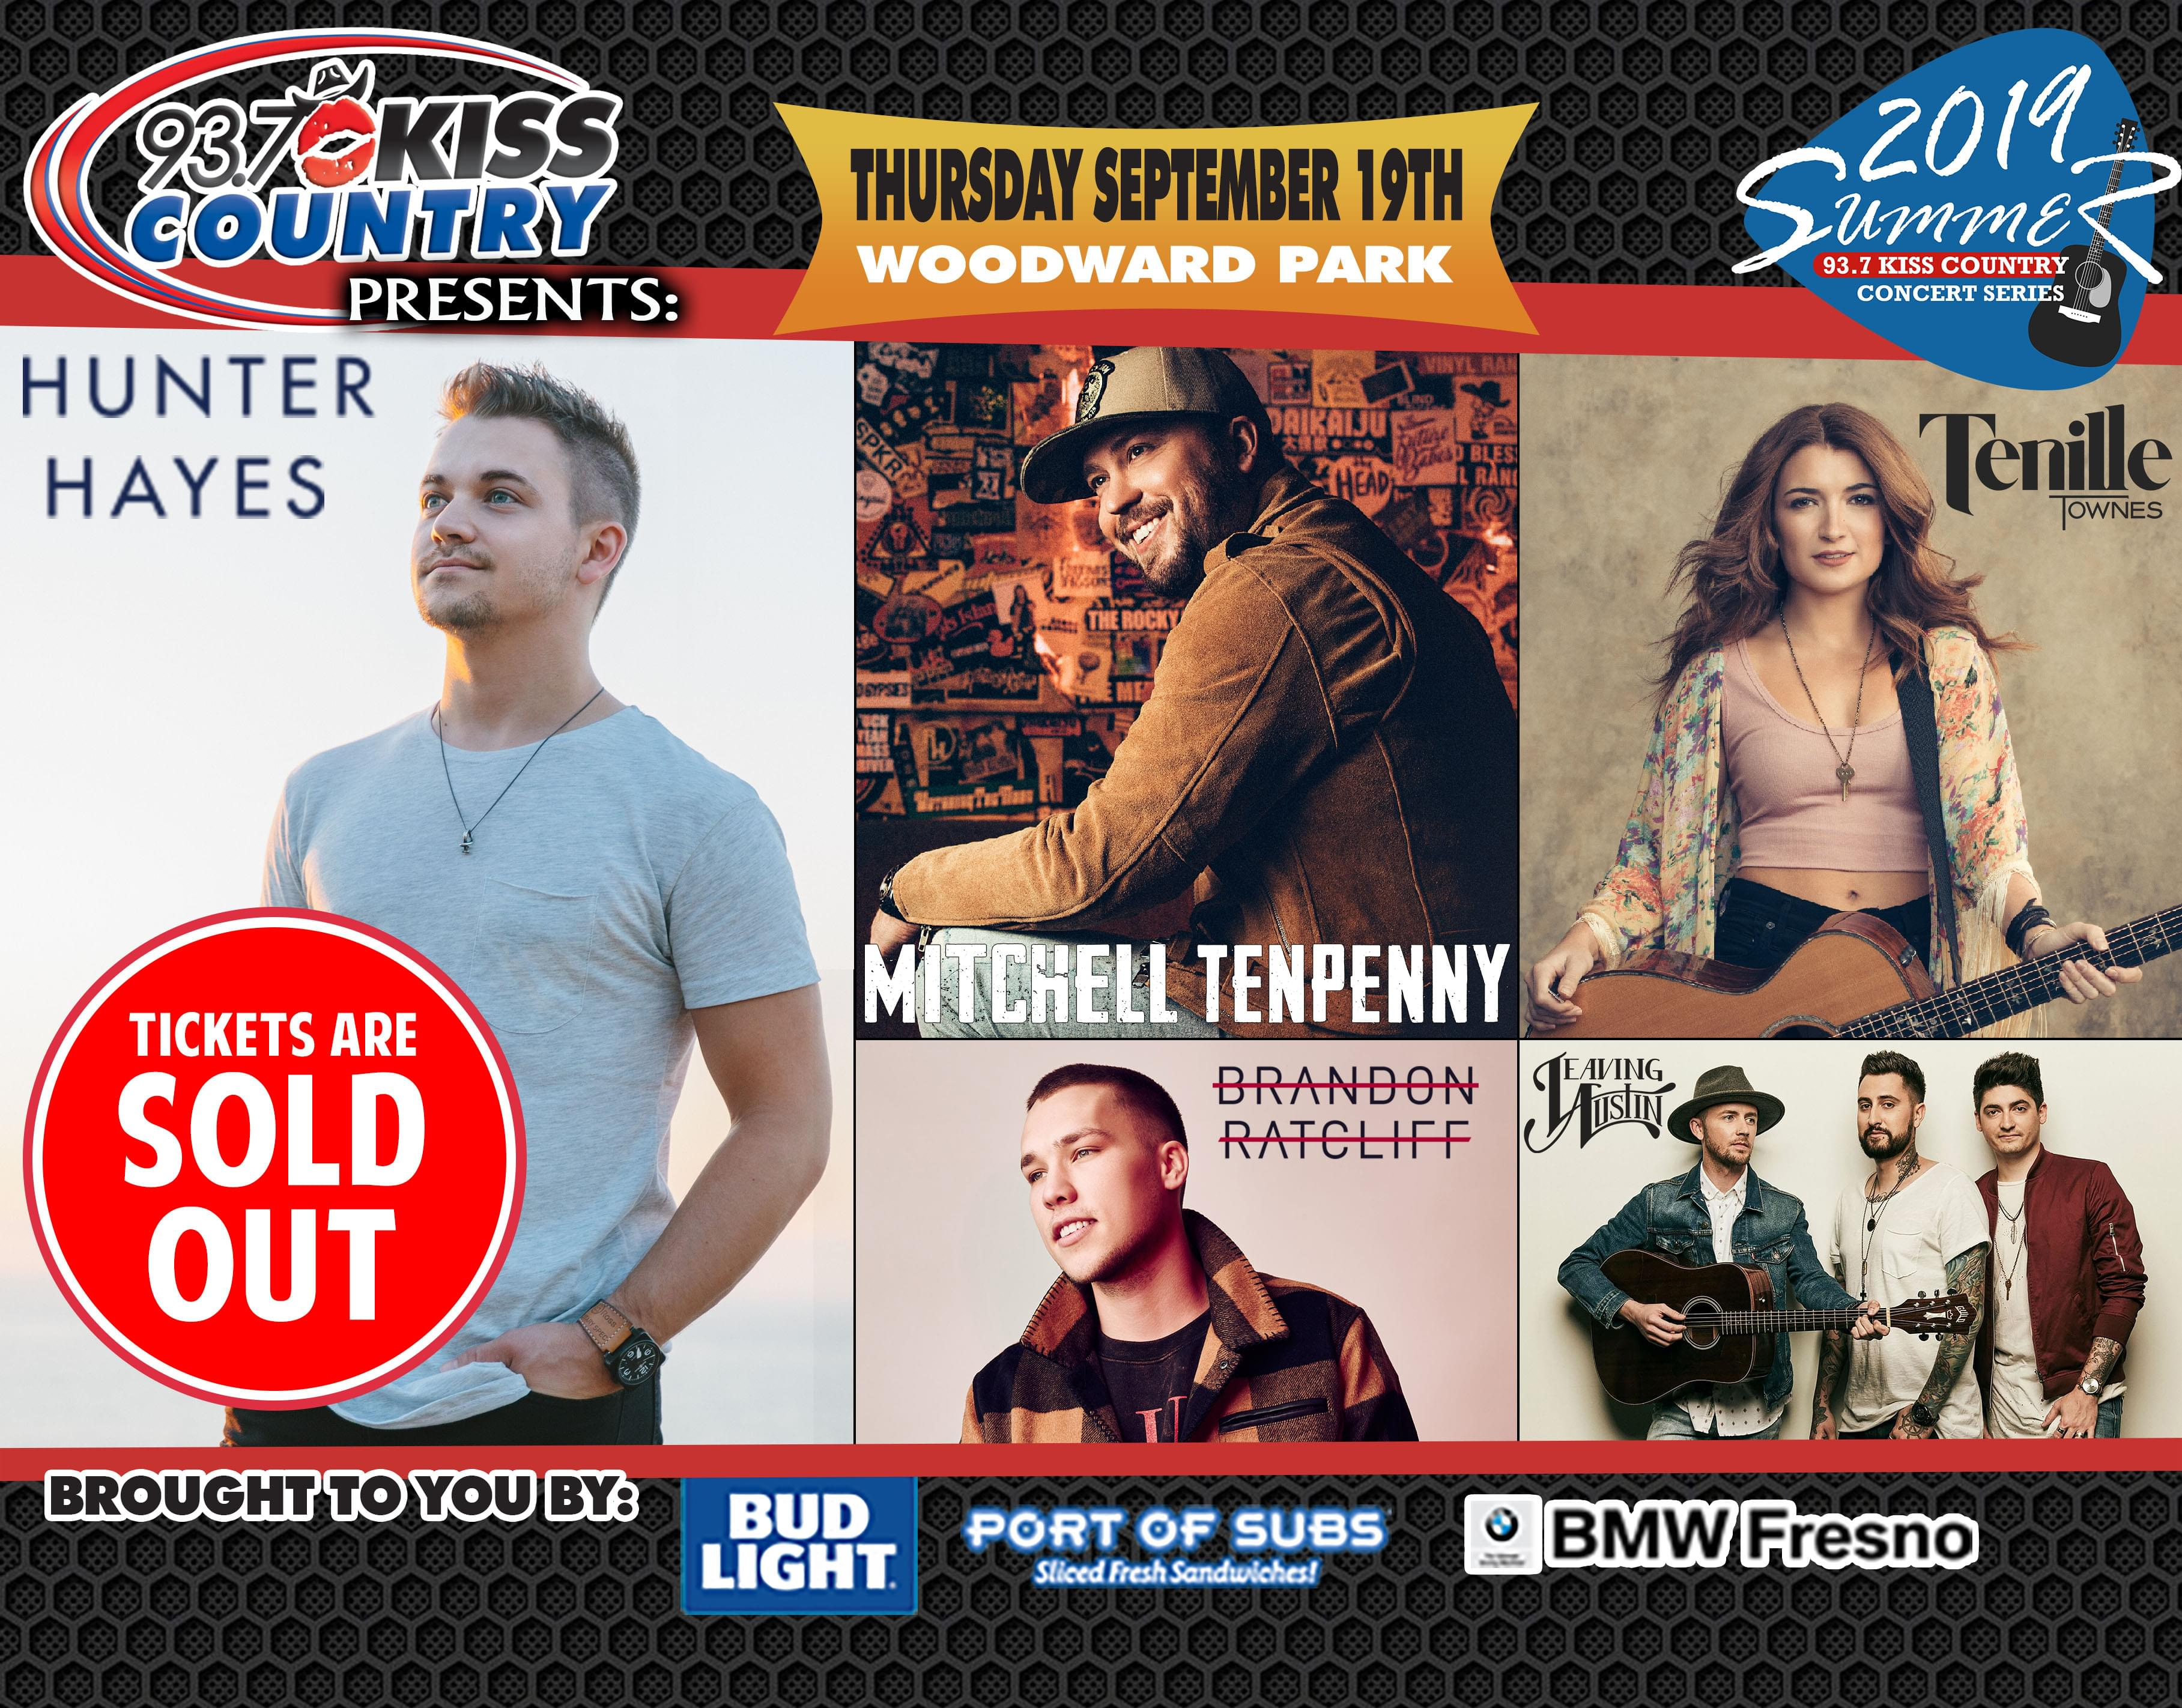 September 19:  SOLD OUT Fifth Kiss Country Summer Concert of 2019